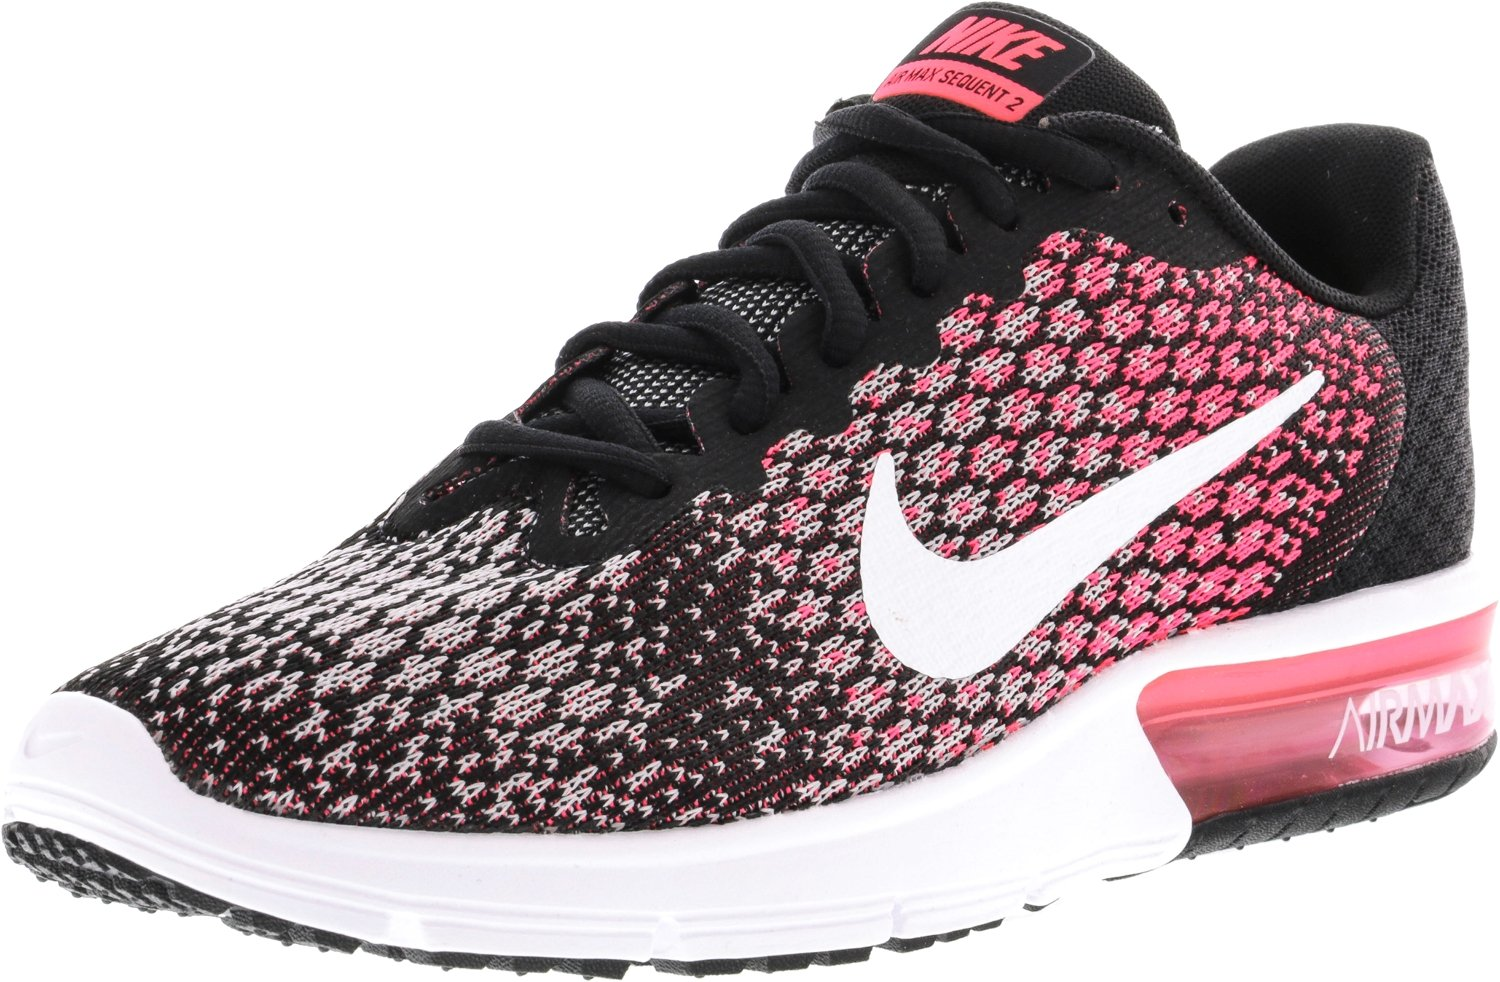 classic fit 7f883 4fb92 Galleon - Nike Womens Air Max Sequent 2 Running Shoes Black White Racer  Pink 852465-004 Size 6.5